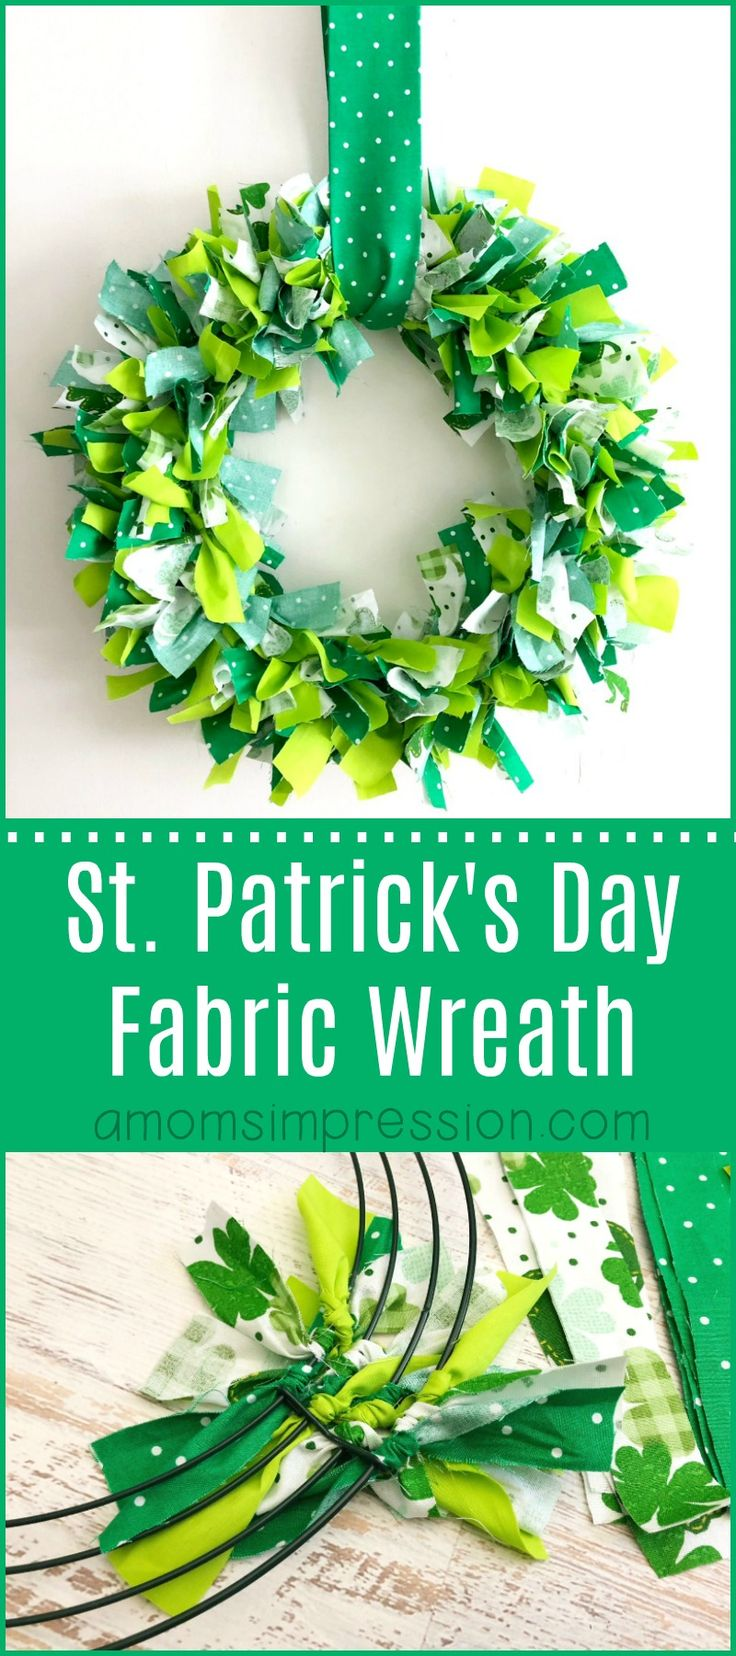 This fabric shamrock wreath is easy to put together and is the perfect  addition to your St. Patty's decor! #StpatricksDay #DIY #Wreath